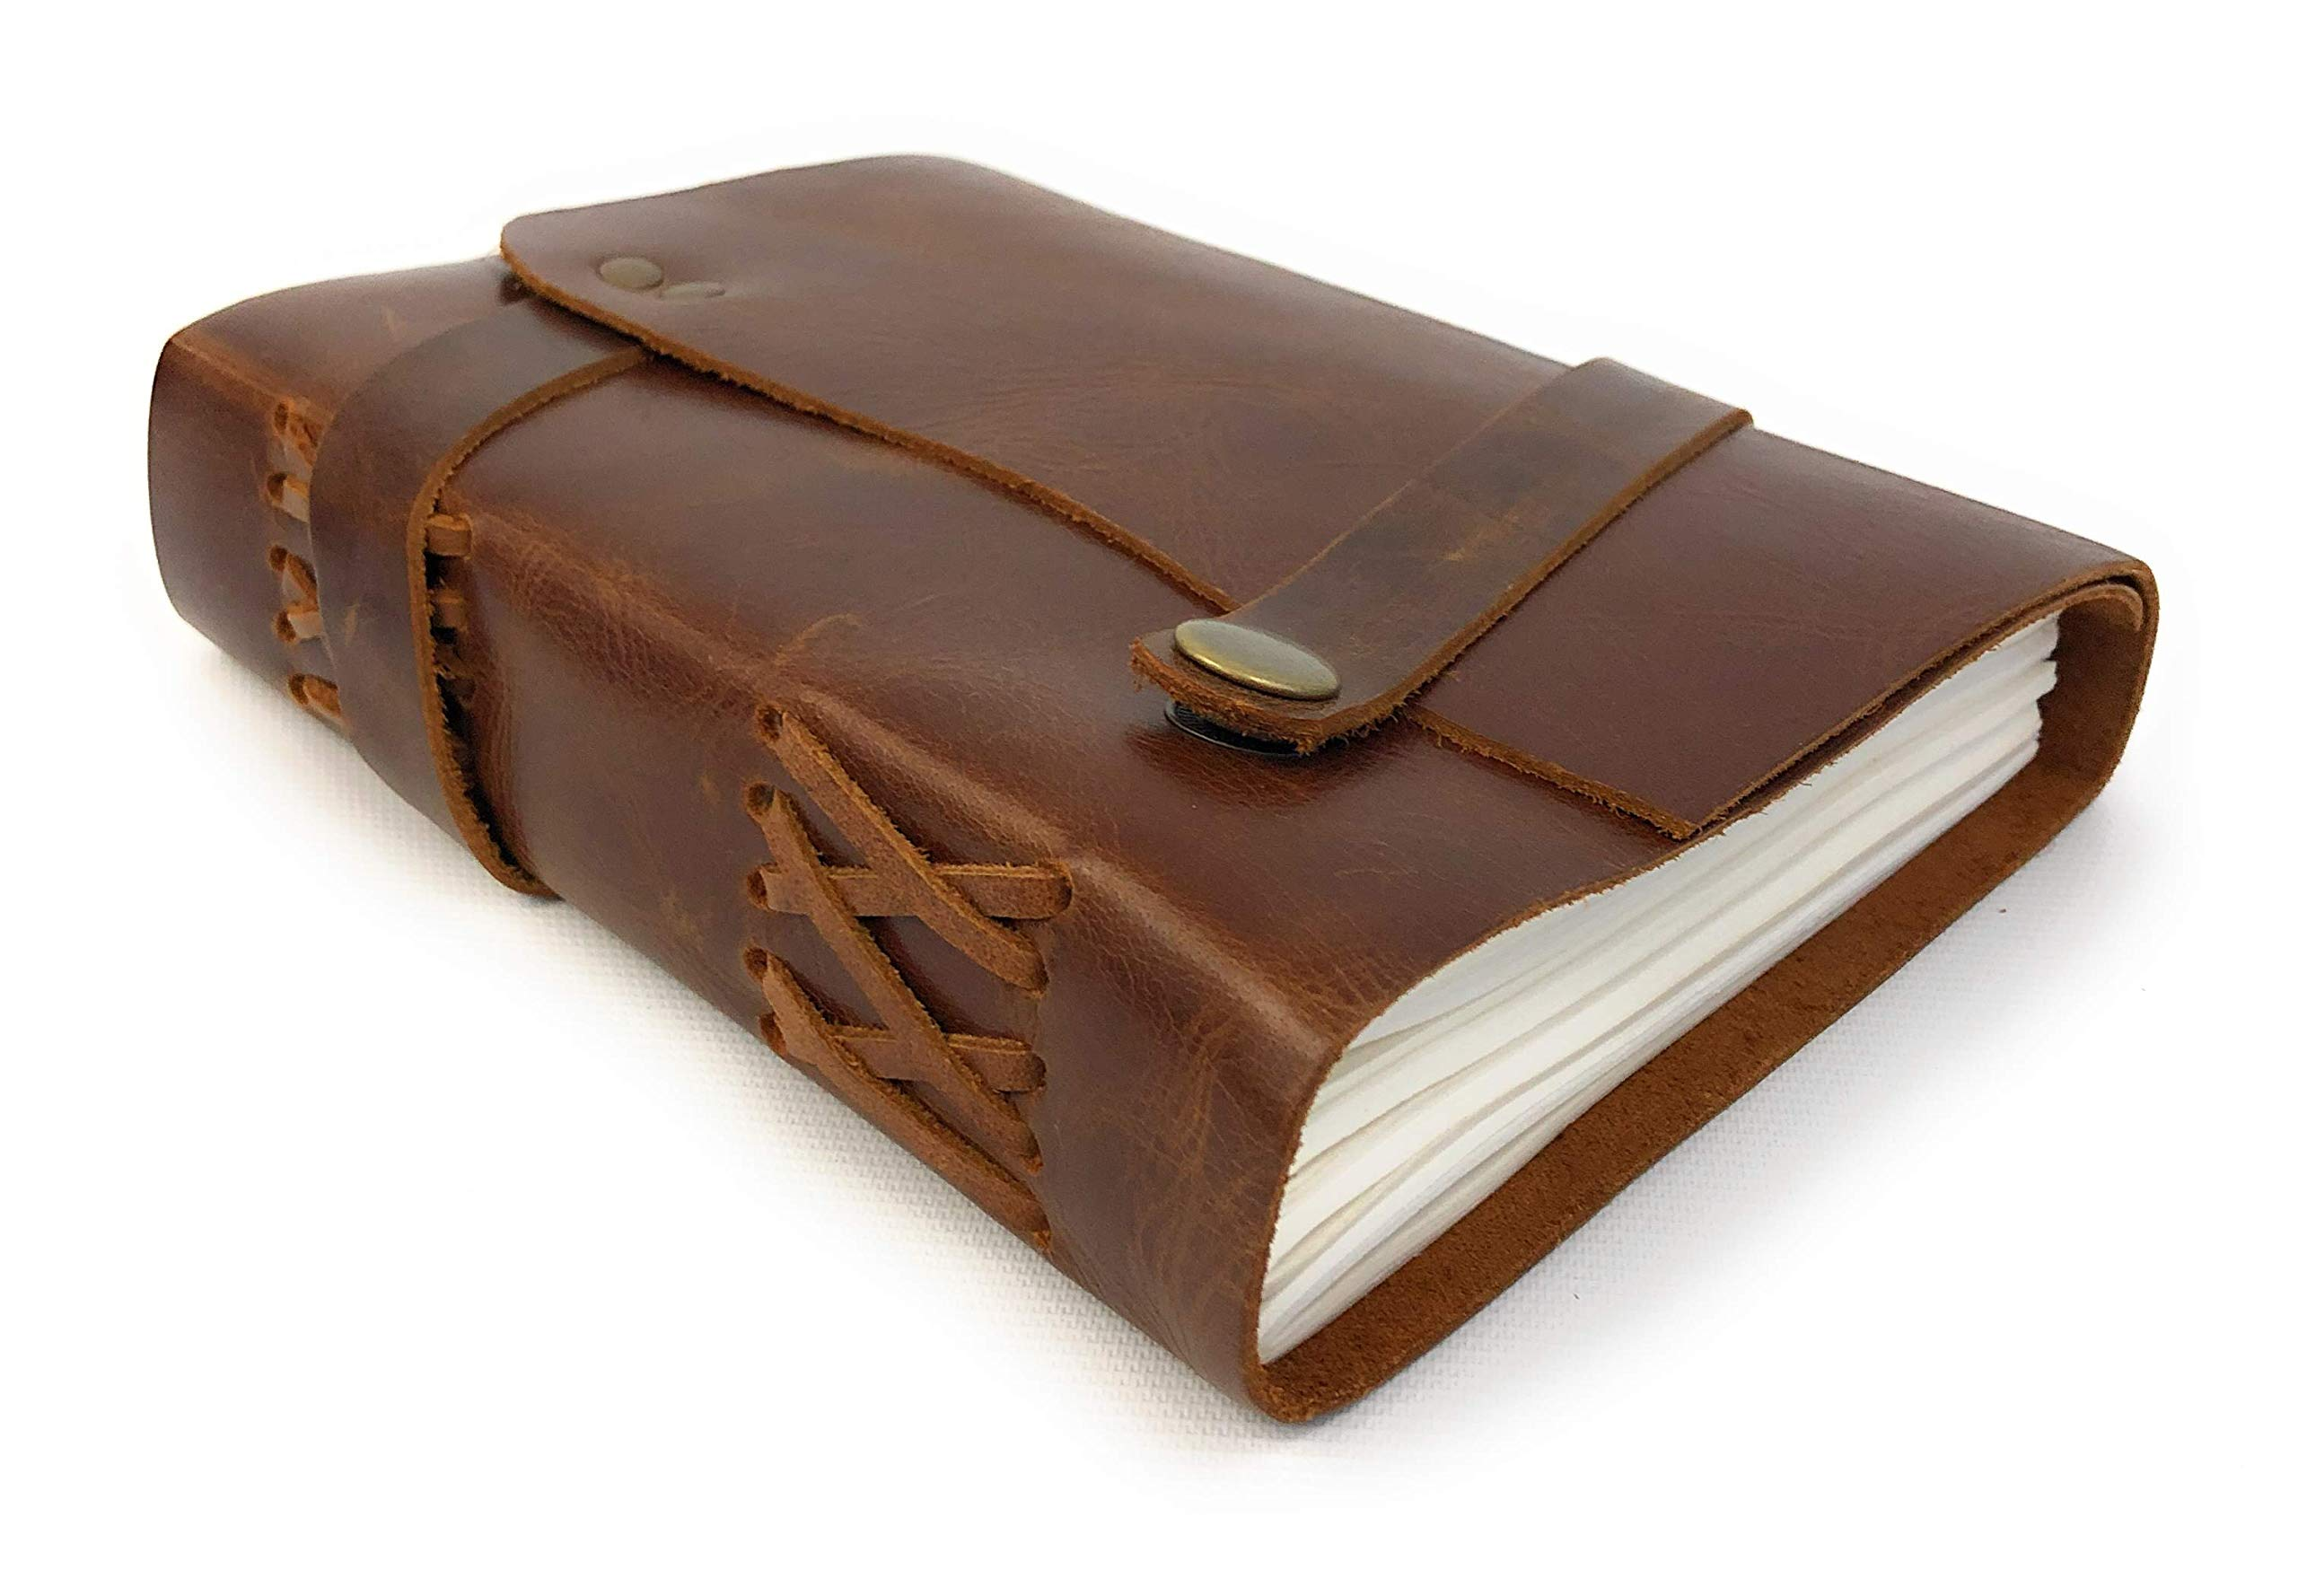 Handmade Leather Journal - Vintage Rustic Style - 240 Pages Unlined Recycled Paper Wrapped in a Distressed Cowhide Leather Cover 7'' x 5'' by Stonesman Products